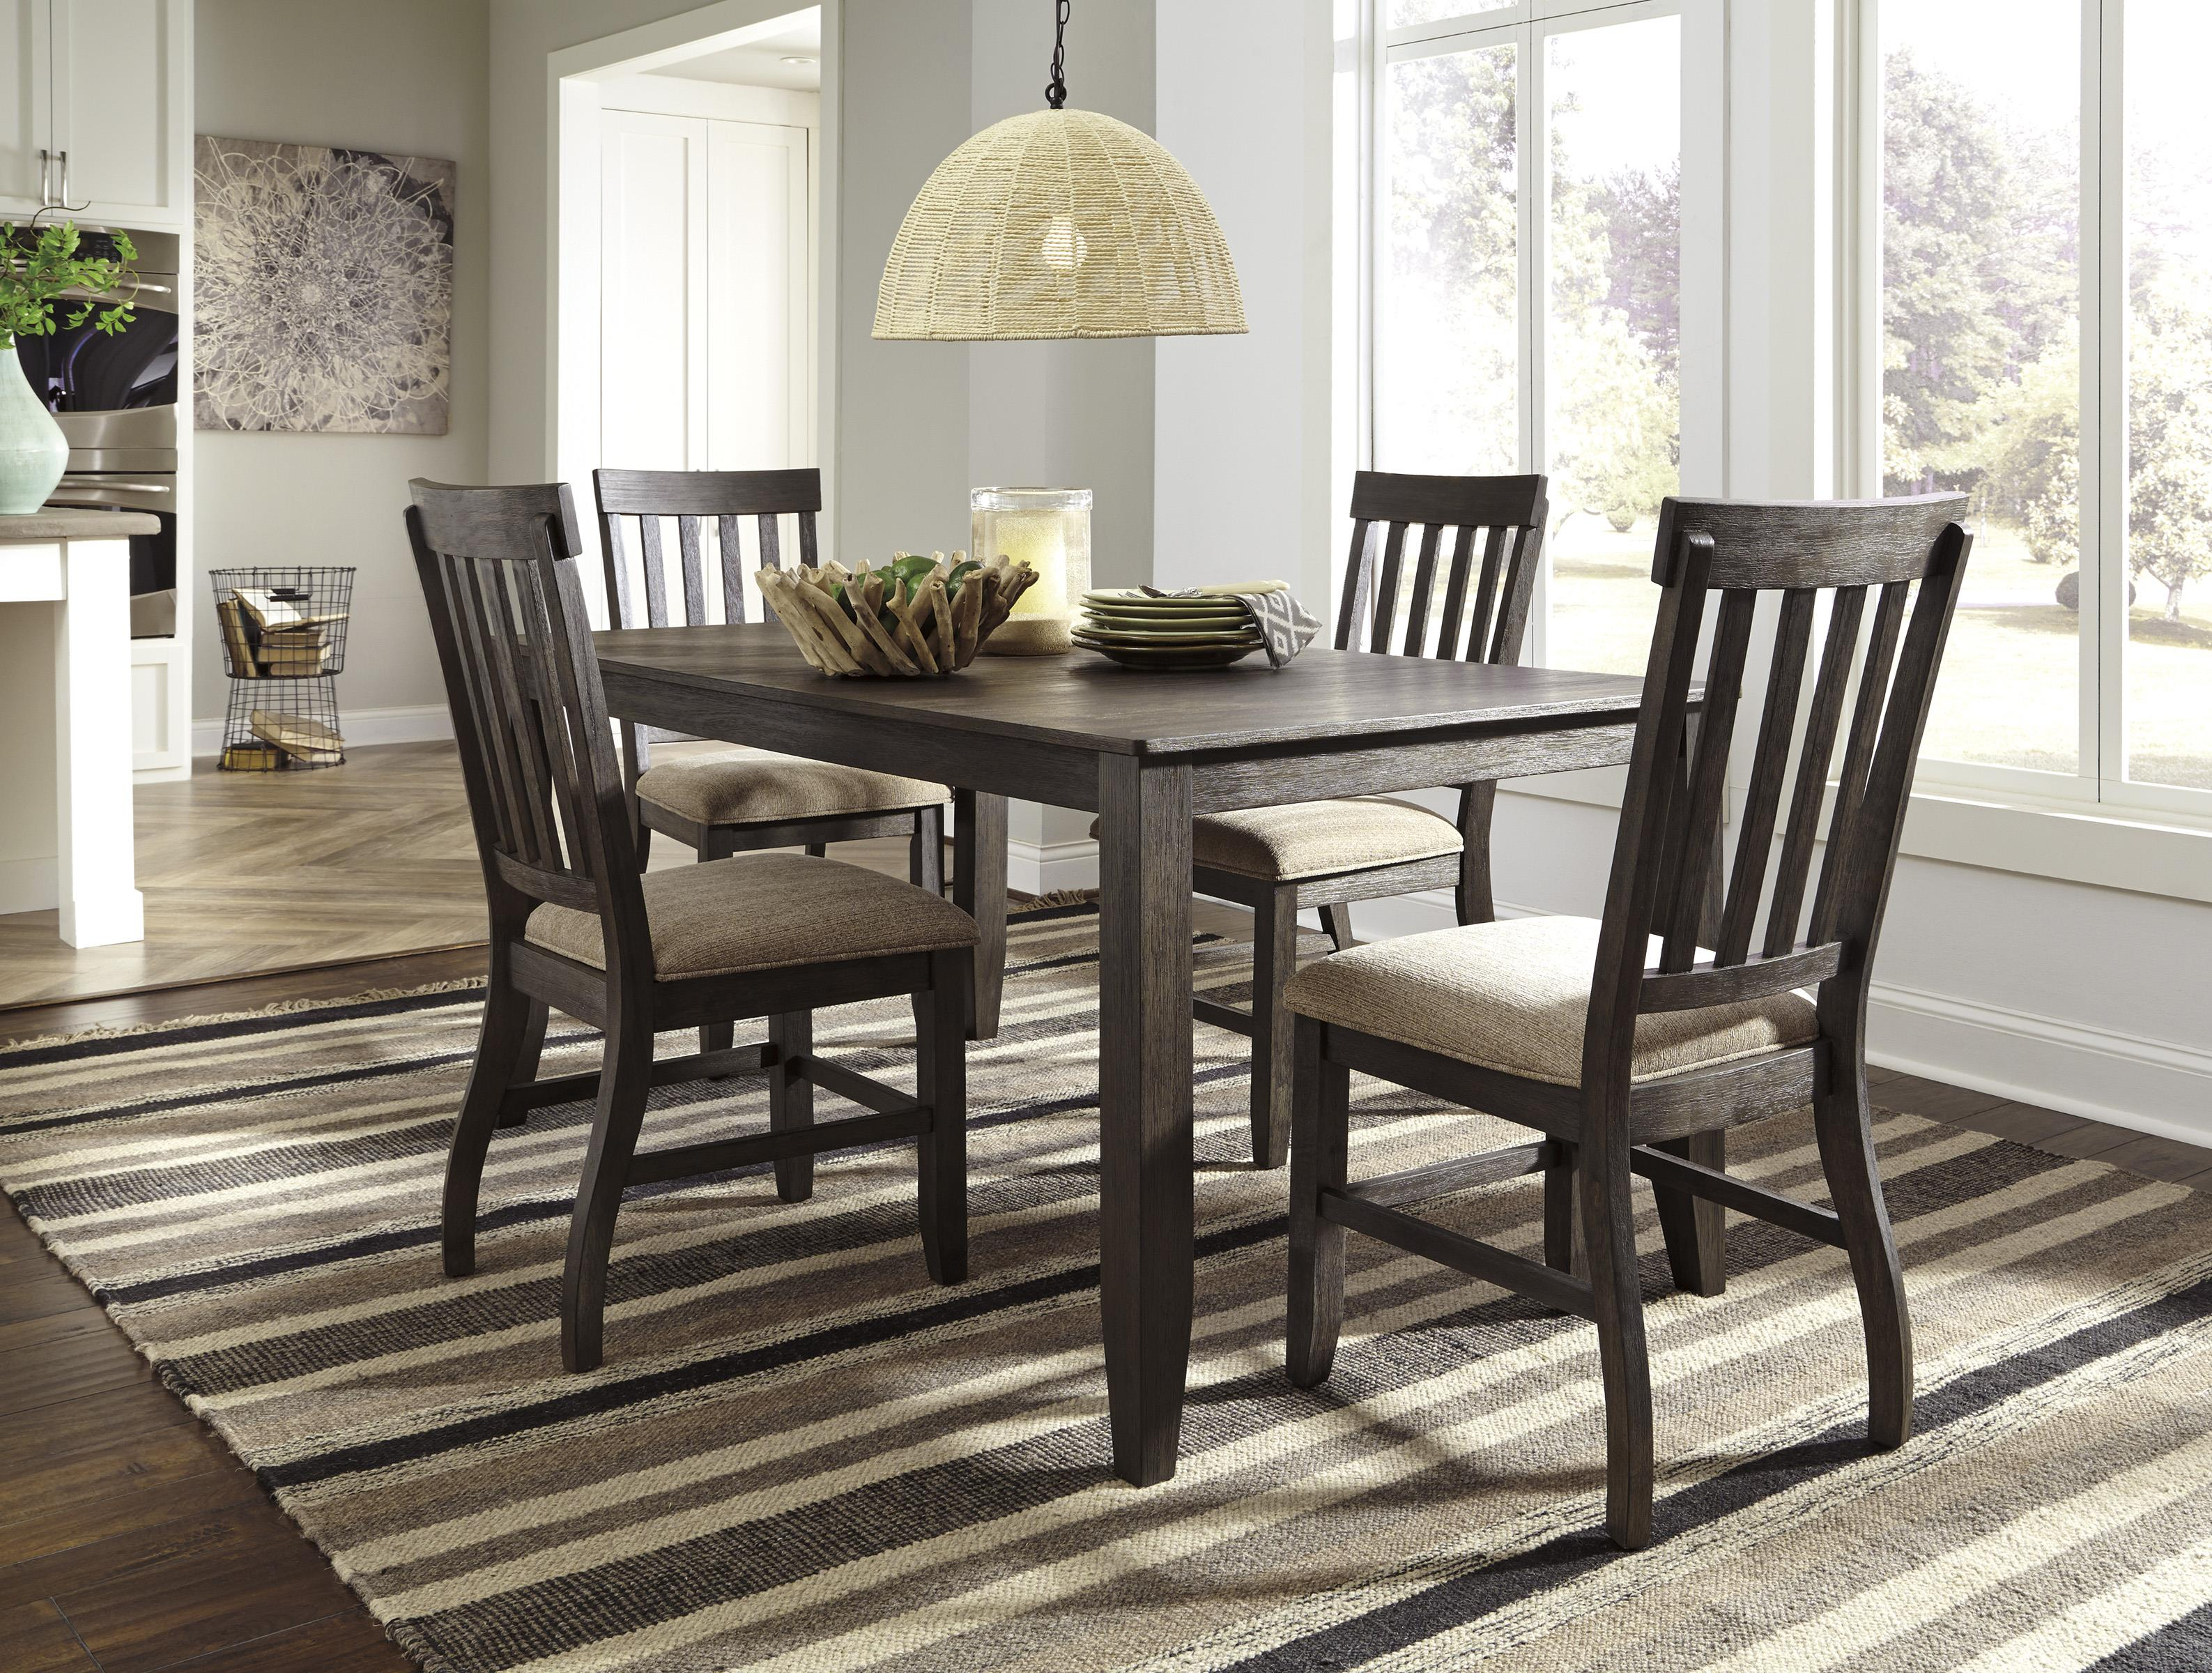 Rectangular Dining Room Table with Wire Brushed Brown Gray